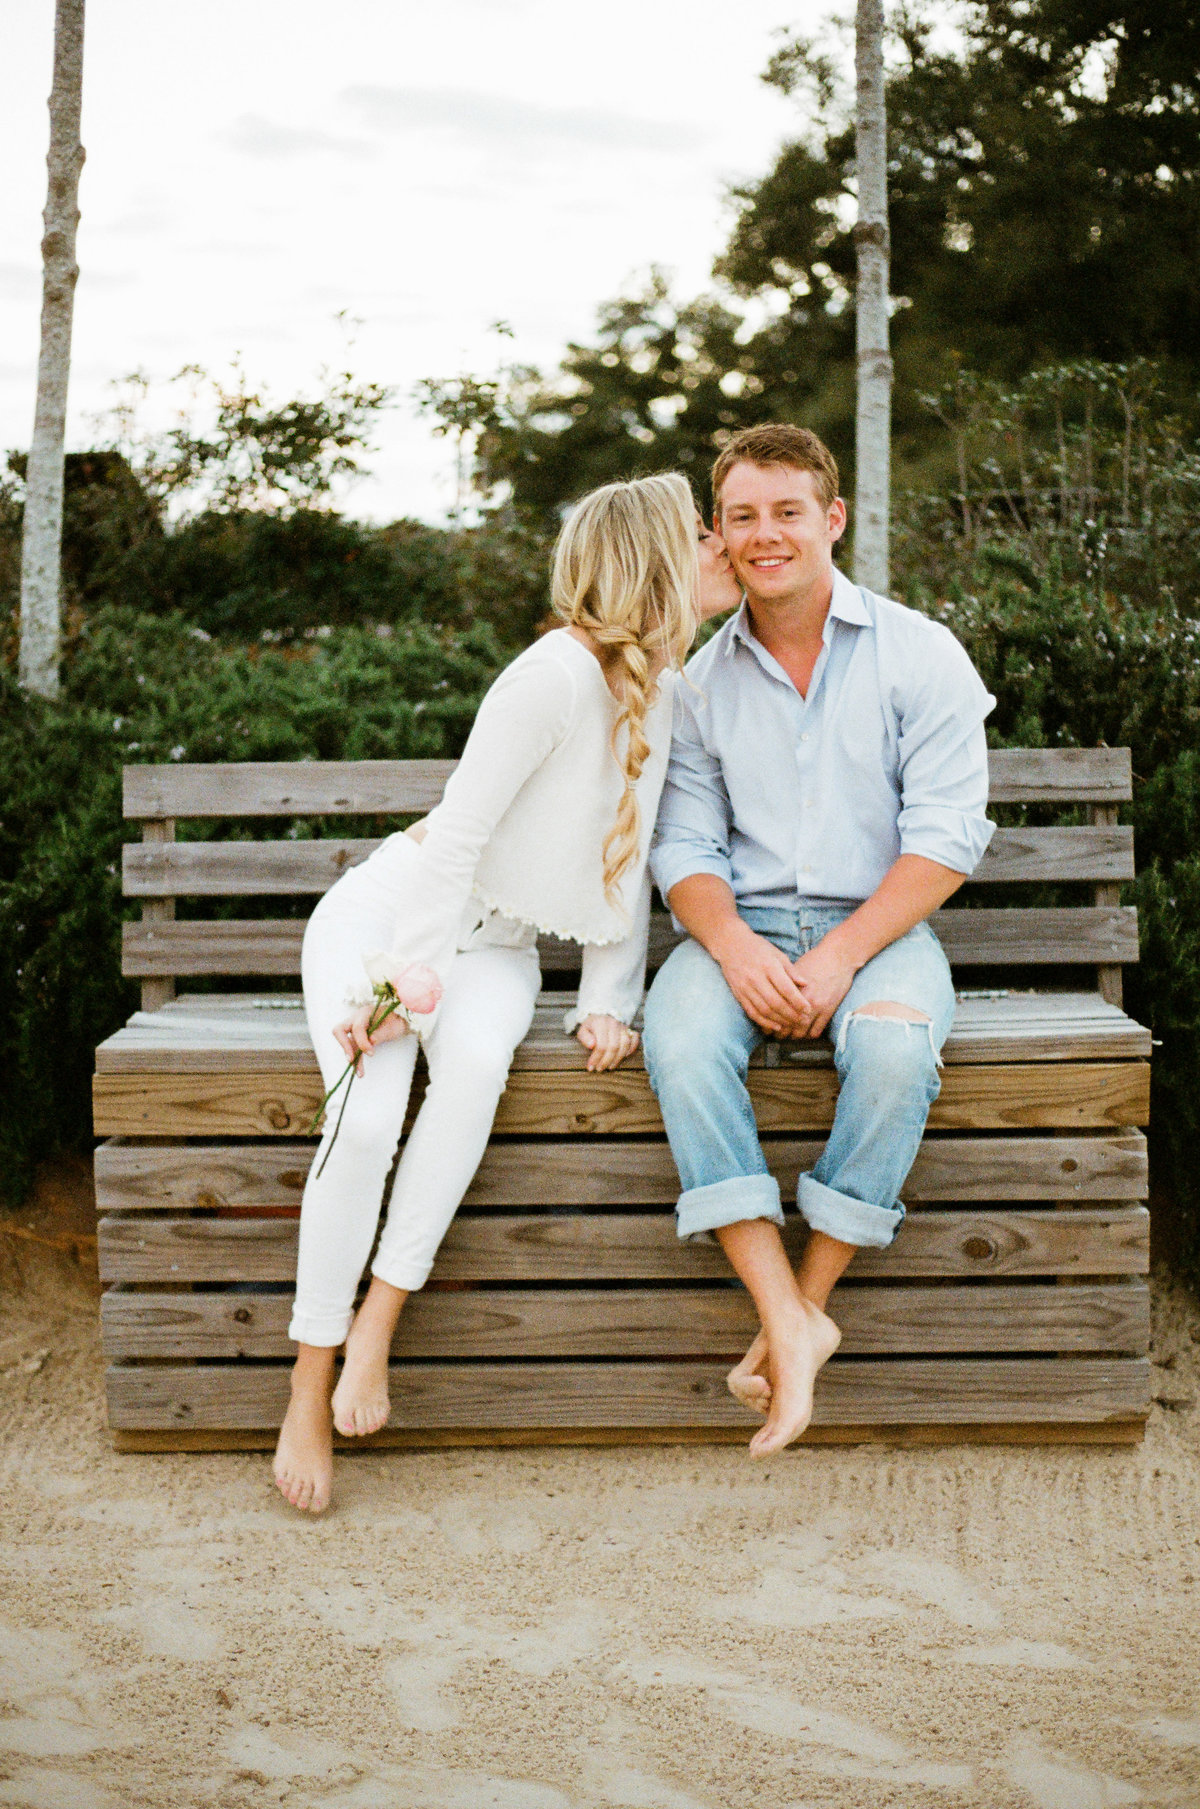 christianne_TAYLOR_holly_smith_austin_alvis_love_royal_oaks_country_club_engagements_couple_photos_photography-199